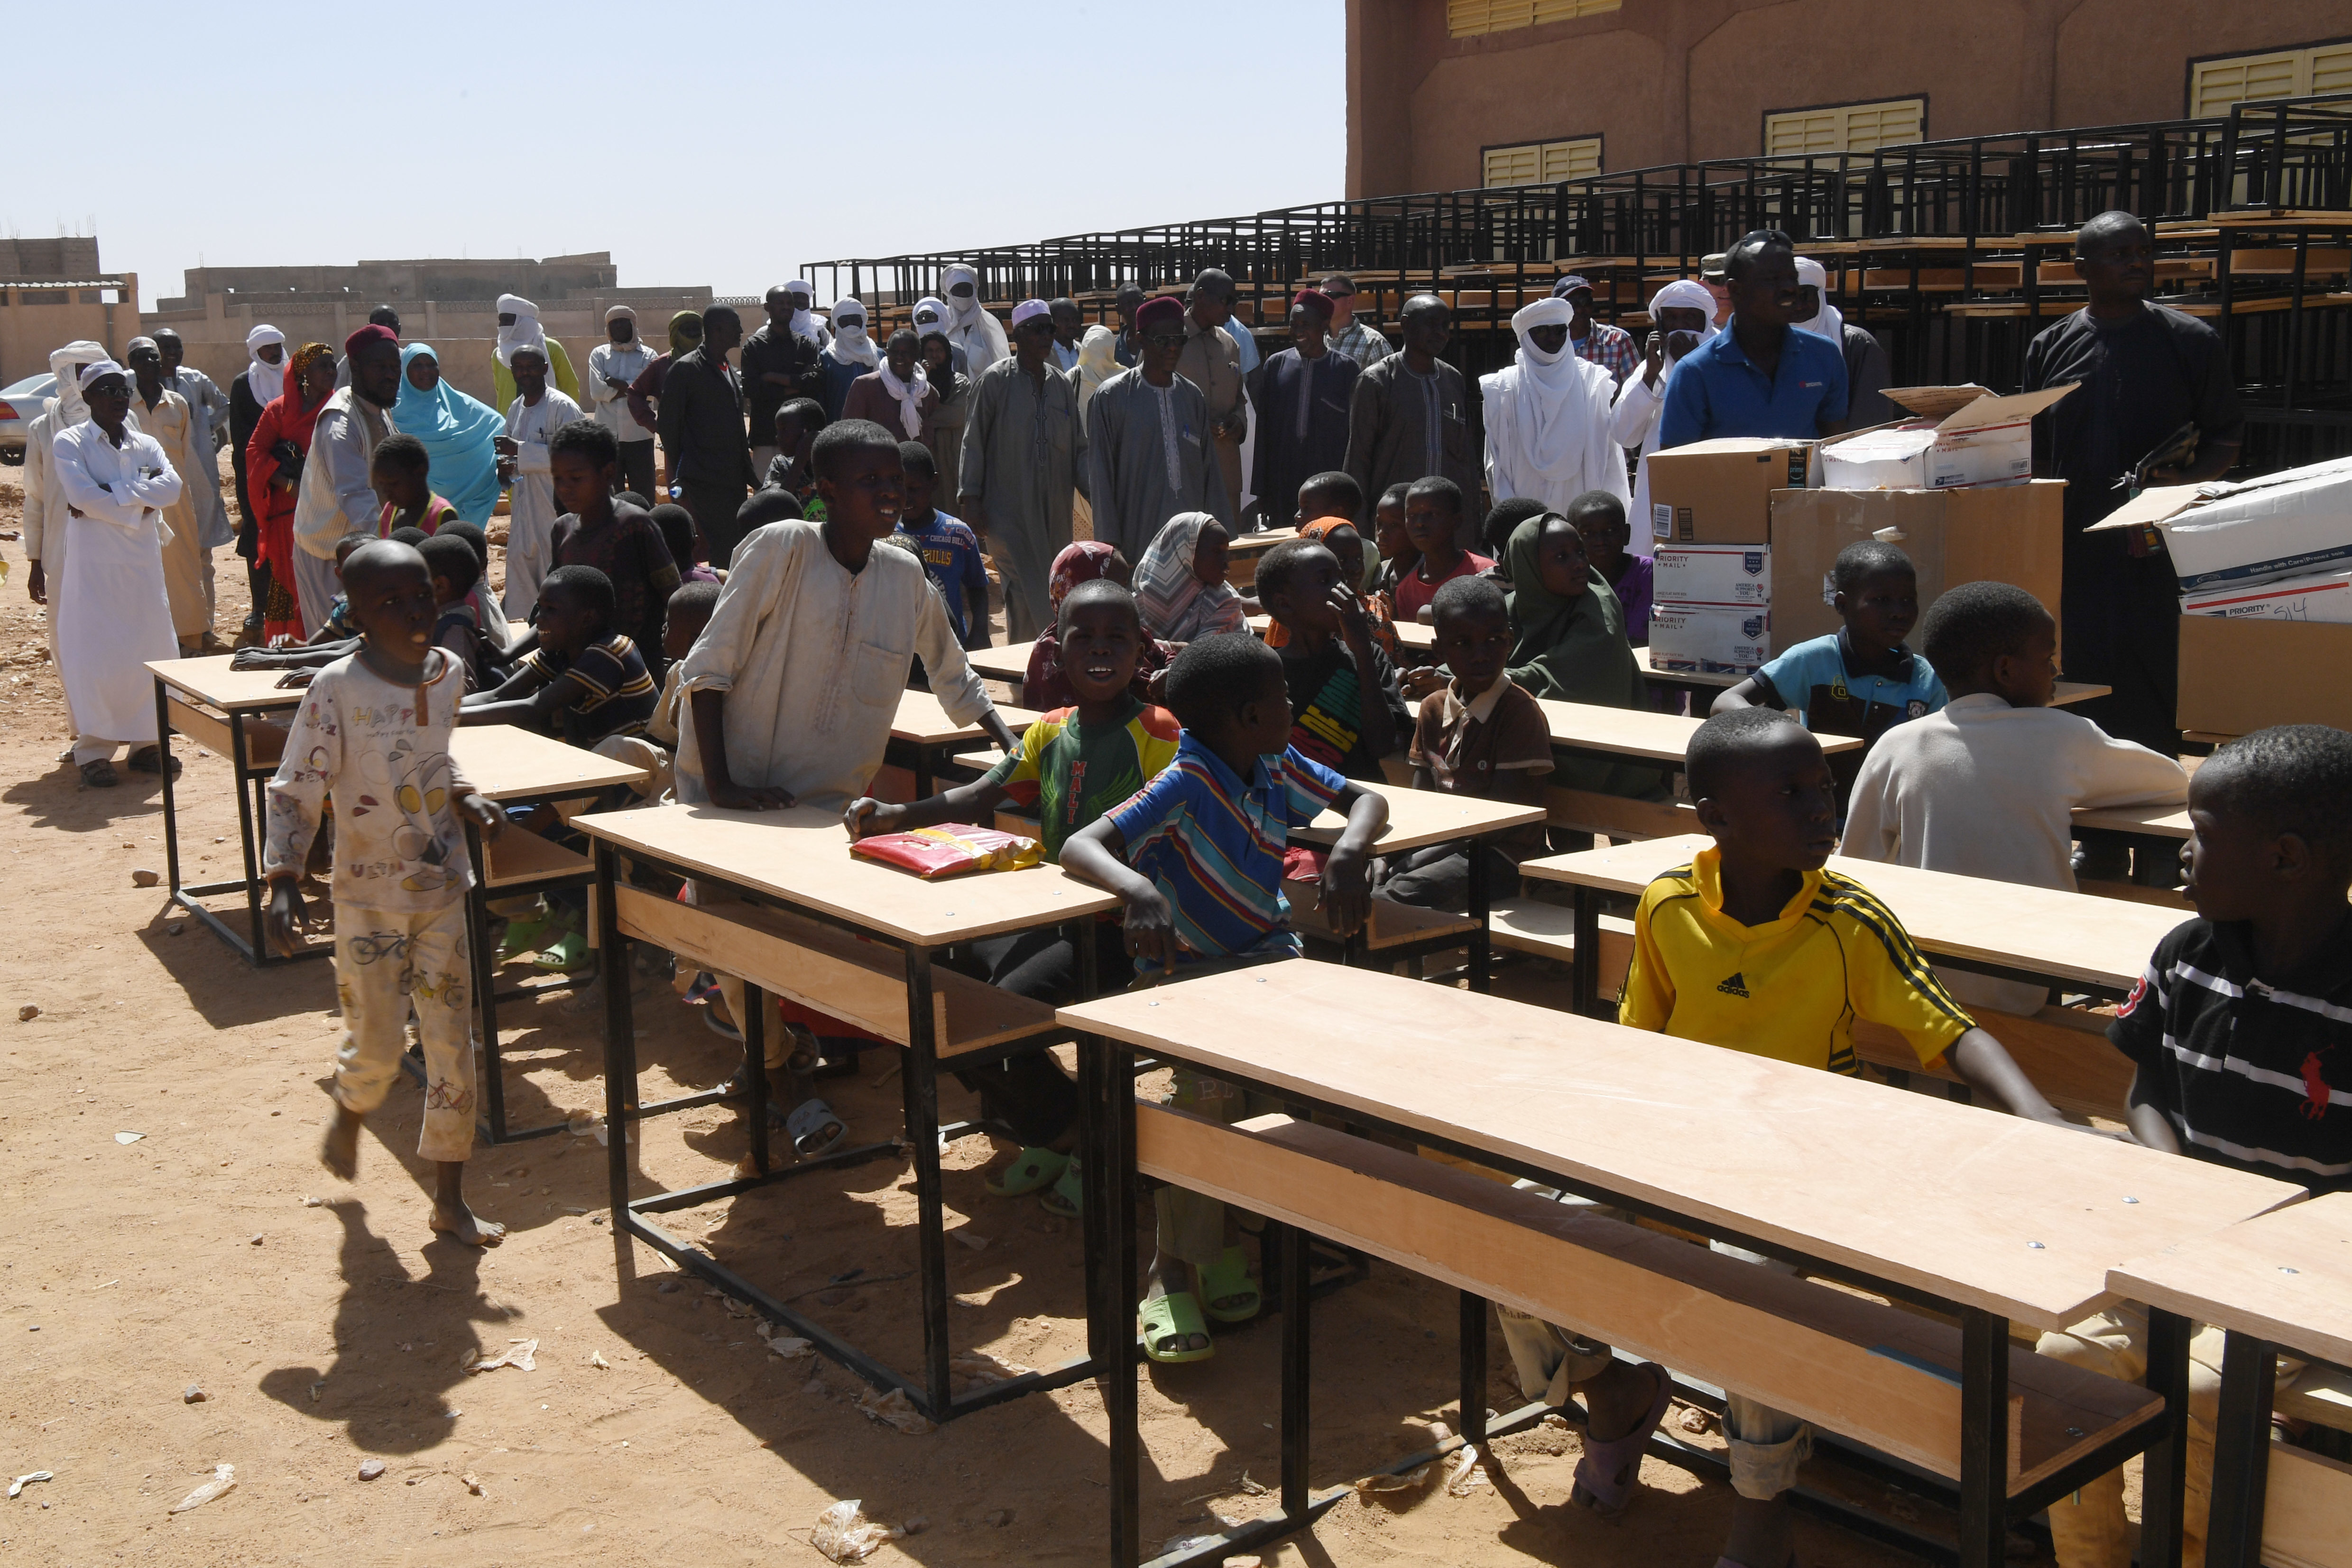 Misrata Primary School students check out the desks during a ceremony in Agadez, Niger, Oct. 23, 2018. Approximately 300 desks were donated to the primary school as part of a plan to donate 1,000 desks to schools in the Agadez region. (U.S. Air Force photo by Tech. Sgt. Rachelle Coleman)